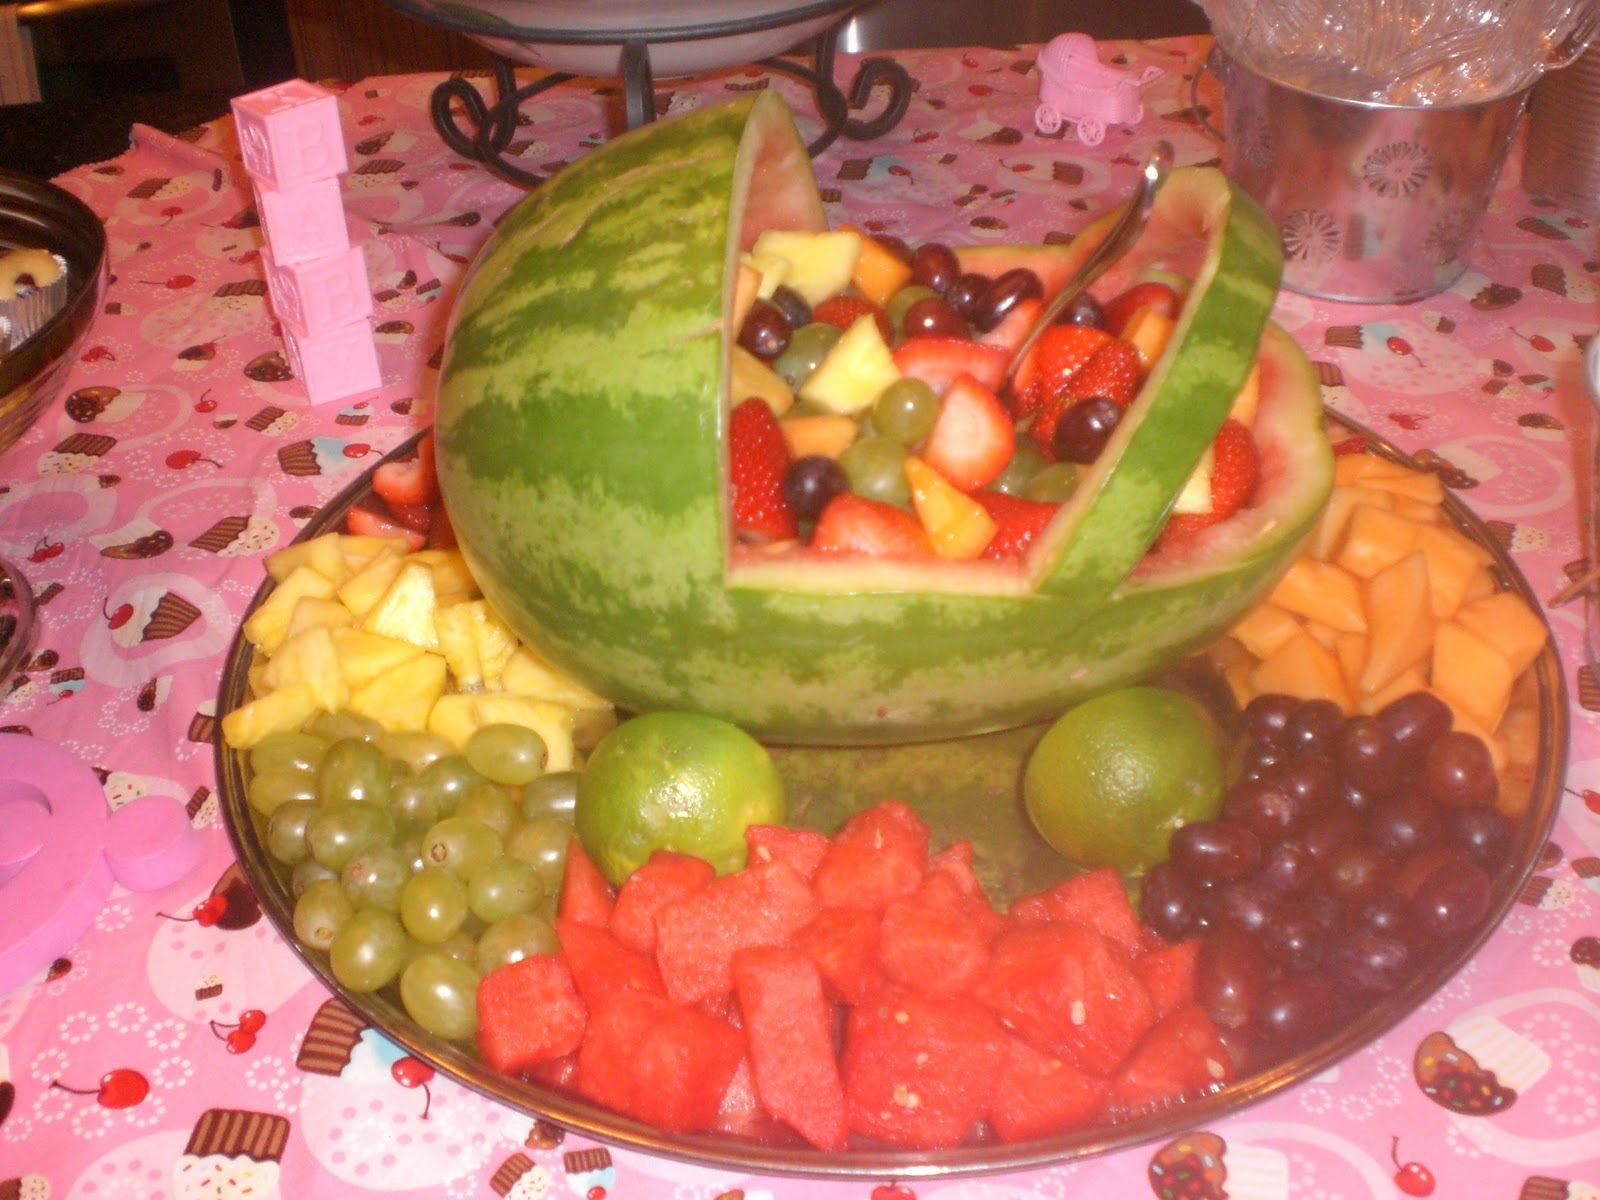 Fruit Trays For Baby Shower | The Baby Carriage Fruit Tray Adds A Fun Touch  To